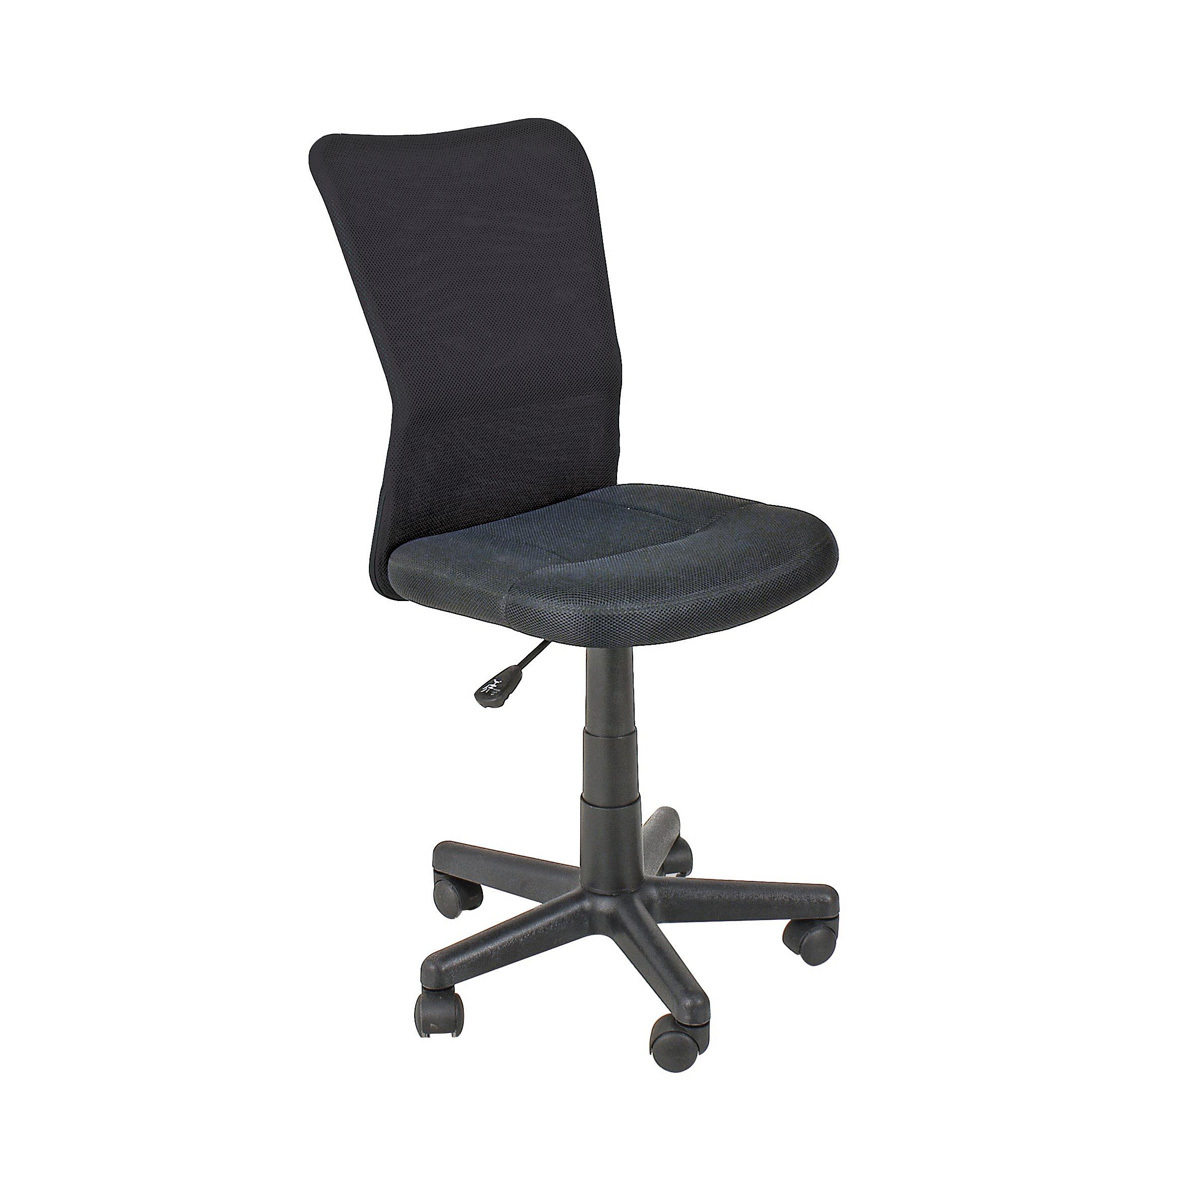 Photos 1: Bizzotto Office chair with wheels - black 0710134